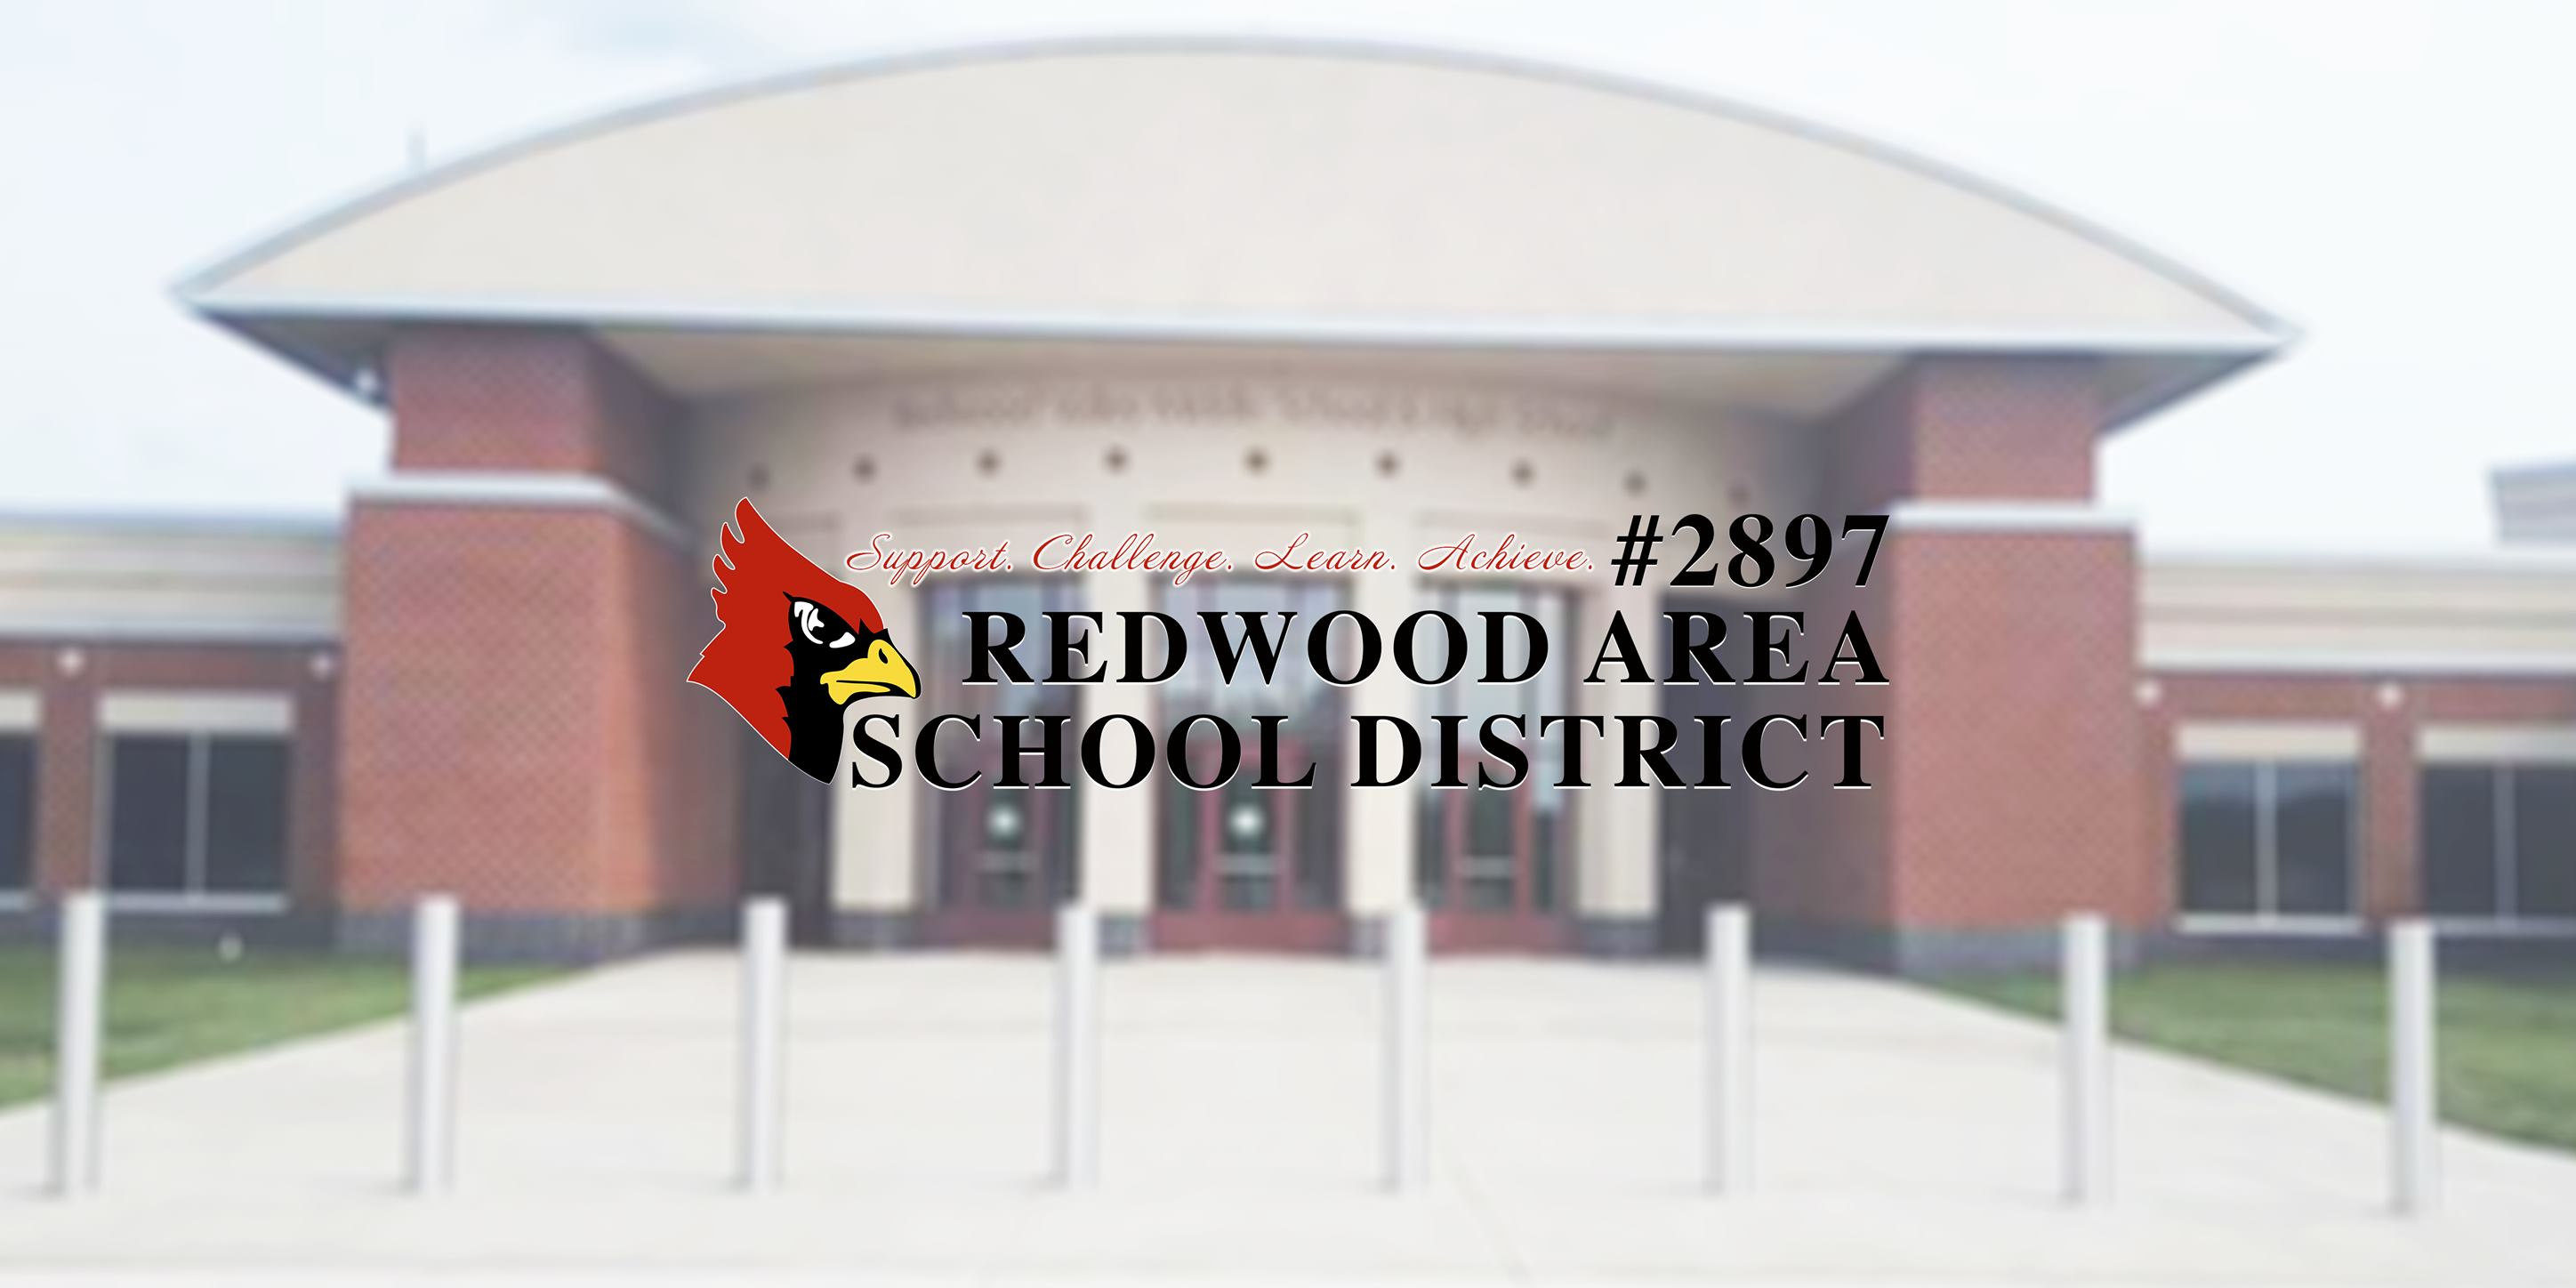 Redwood Area School District